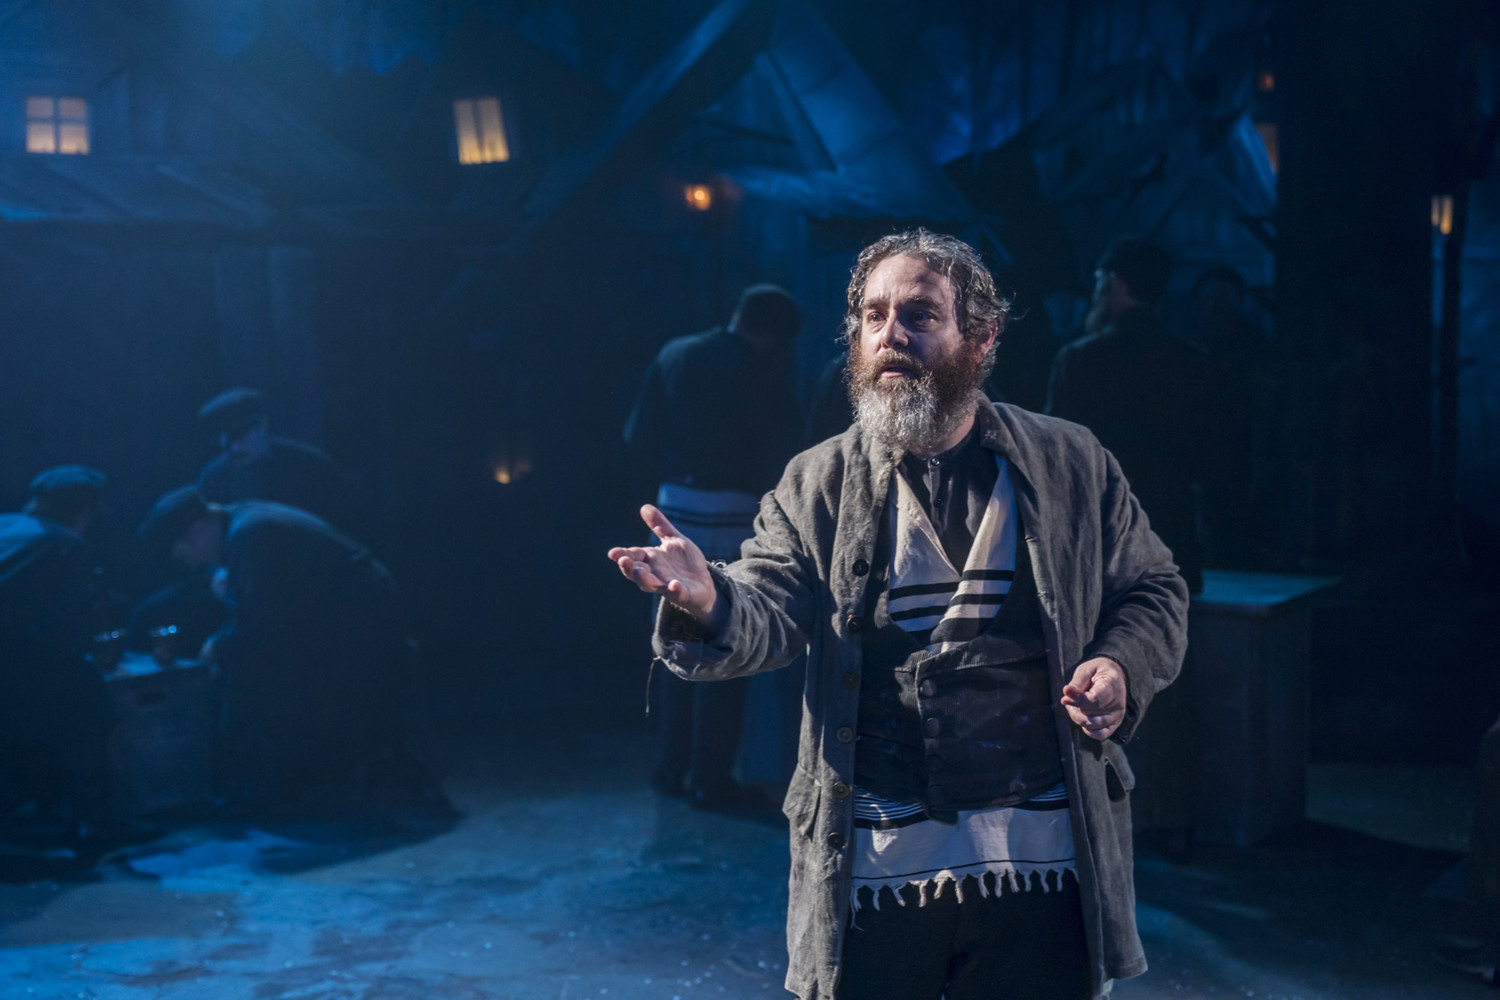 BWW Review: FIDDLER ON THE ROOF, Menier Chocolate Factory